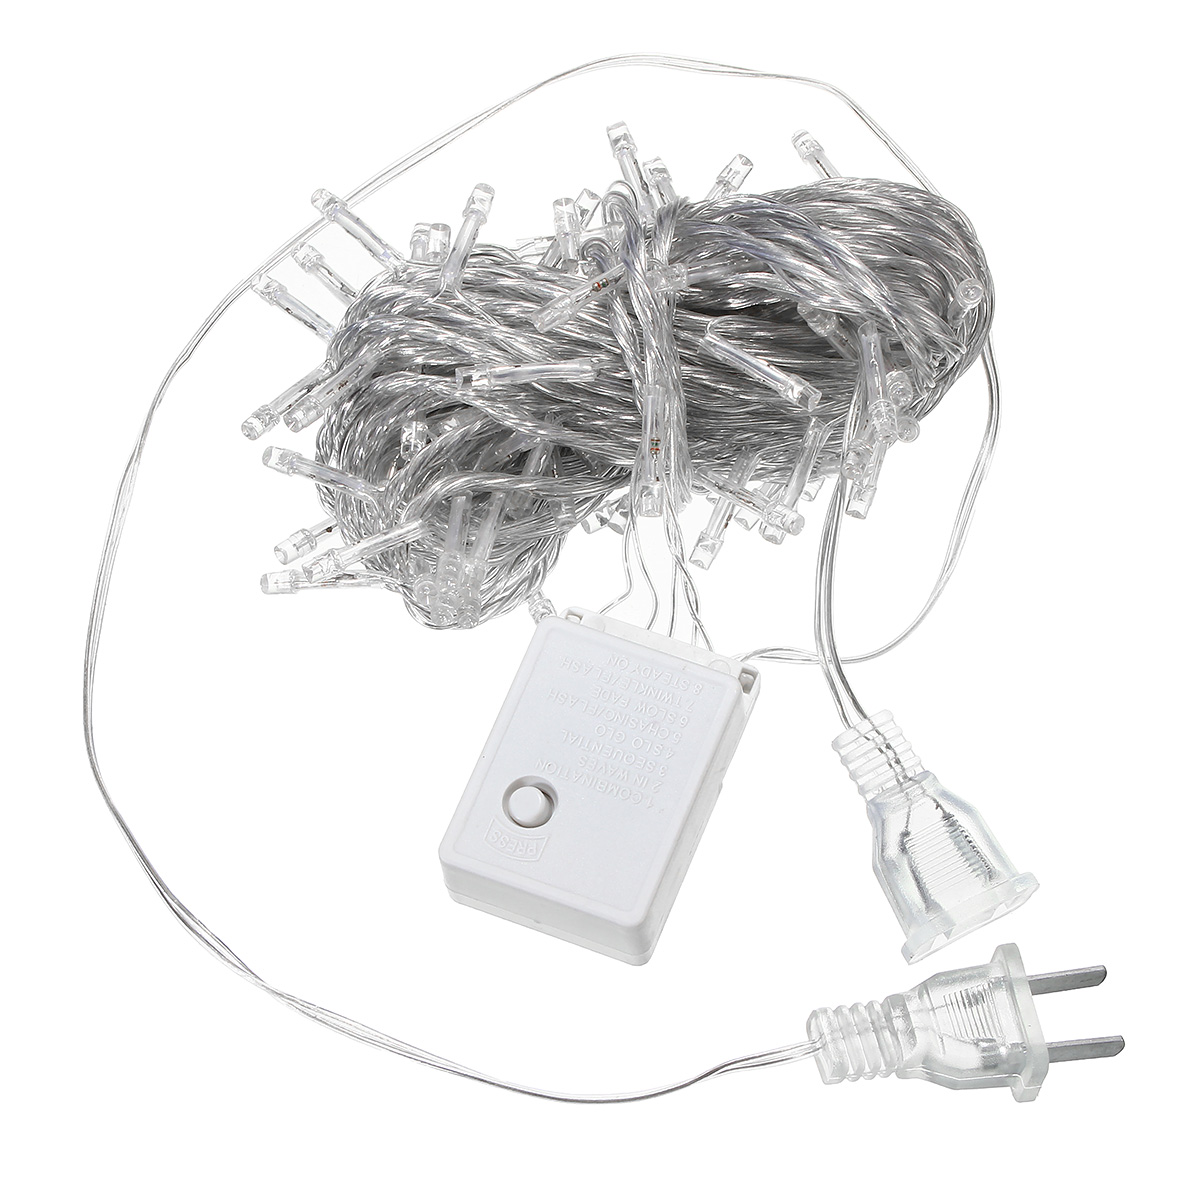 10m 100led Fairy String Christmas Light Outdoor Waterproof Wedding Holiday Party Lamp Us Plug